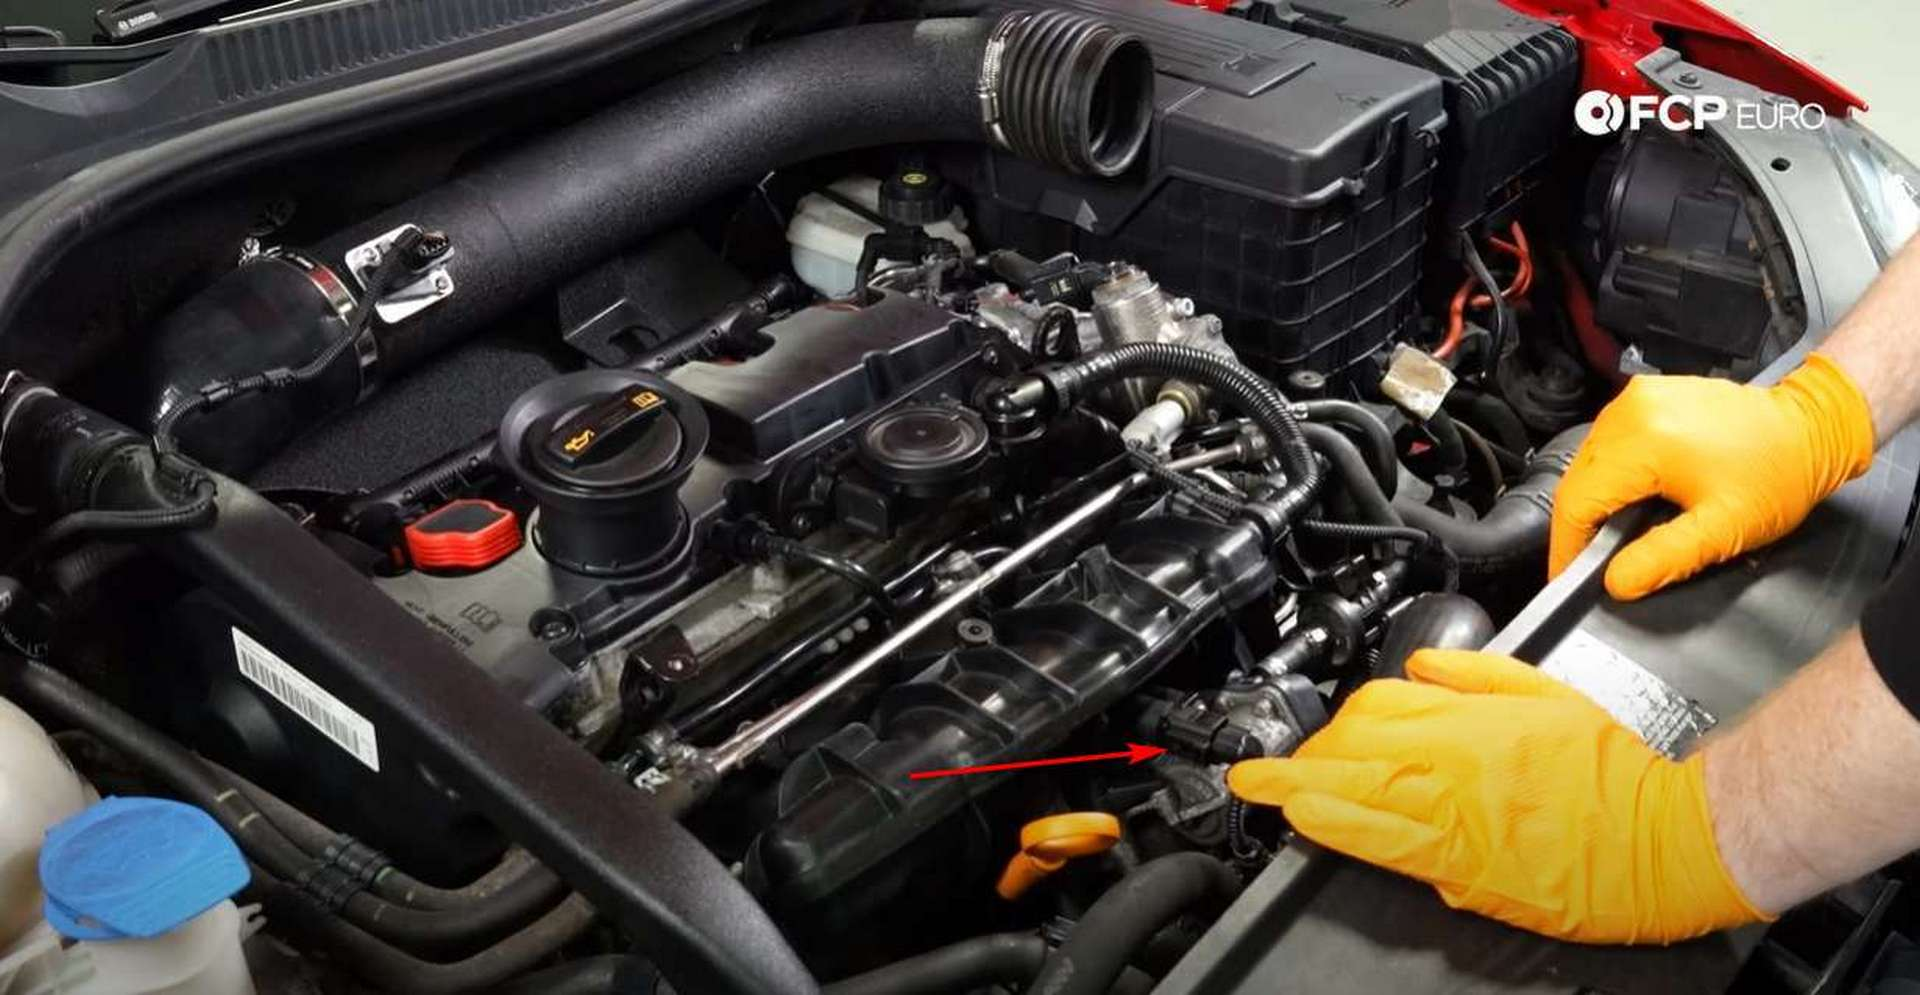 01-DIY-Mk5-GTI-Oil-FIlter-Housing_Removing-Intake-Components